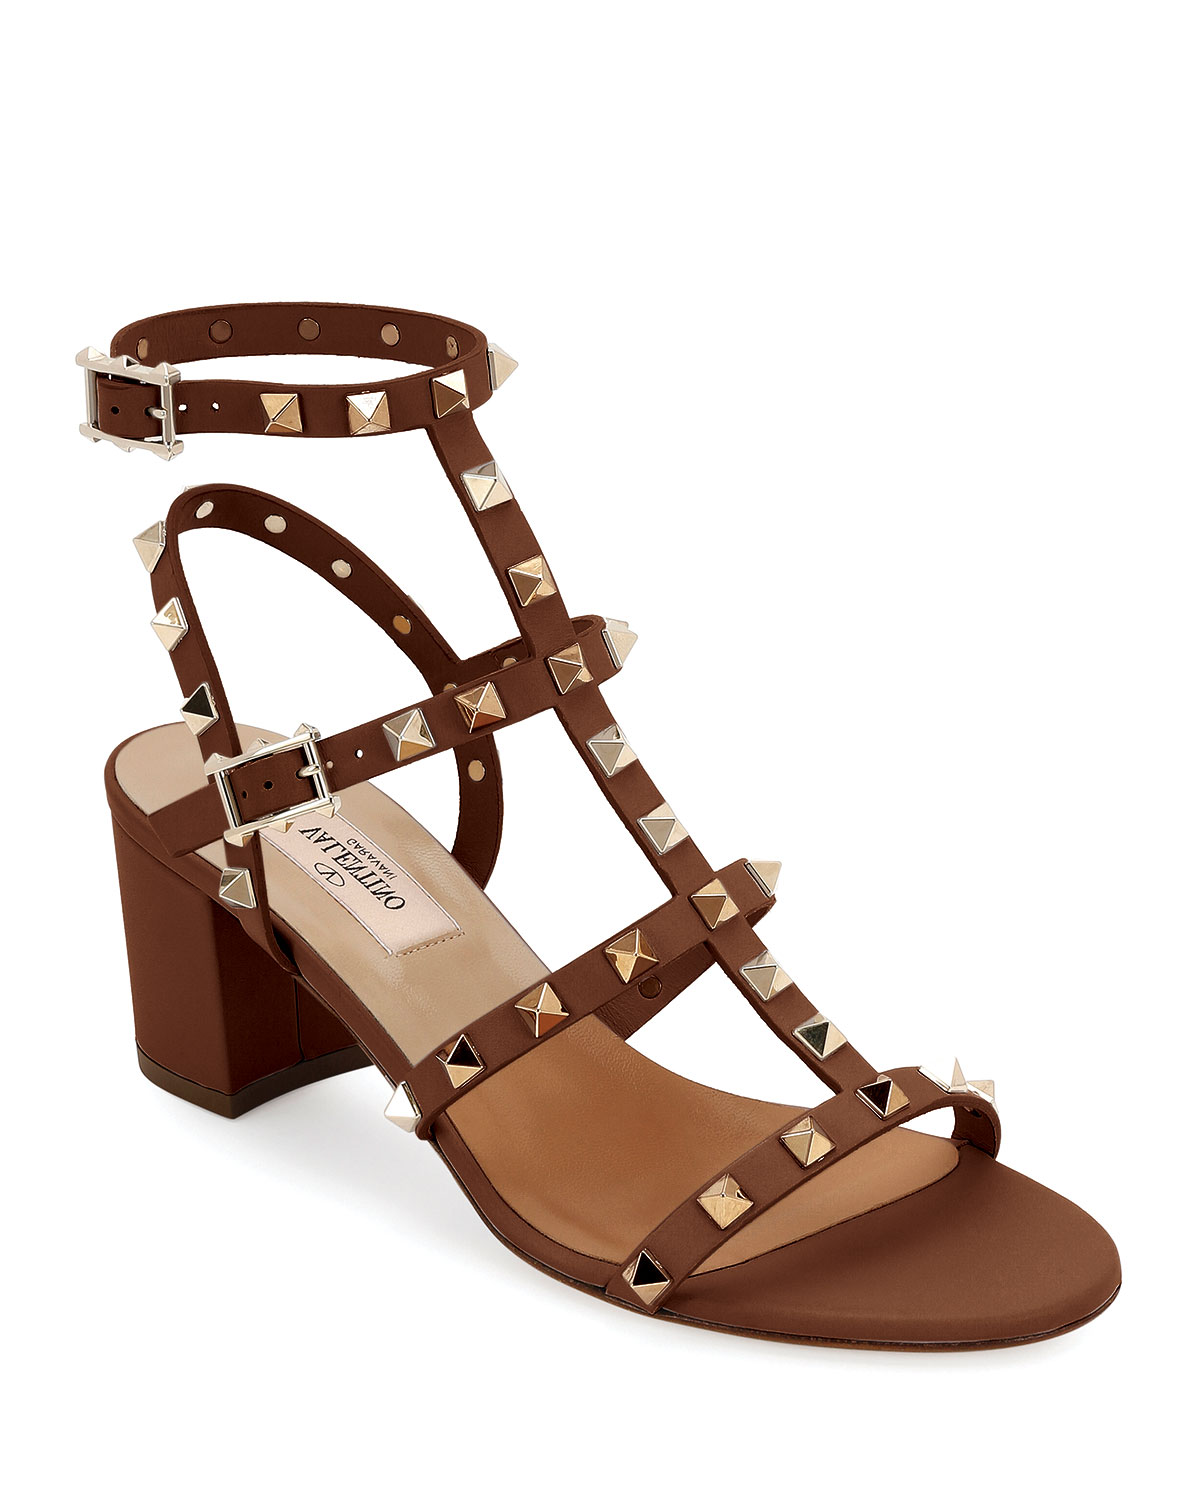 e9c87a415bdd Valentino Garavani Rockstud Leather 60mm City Sandals